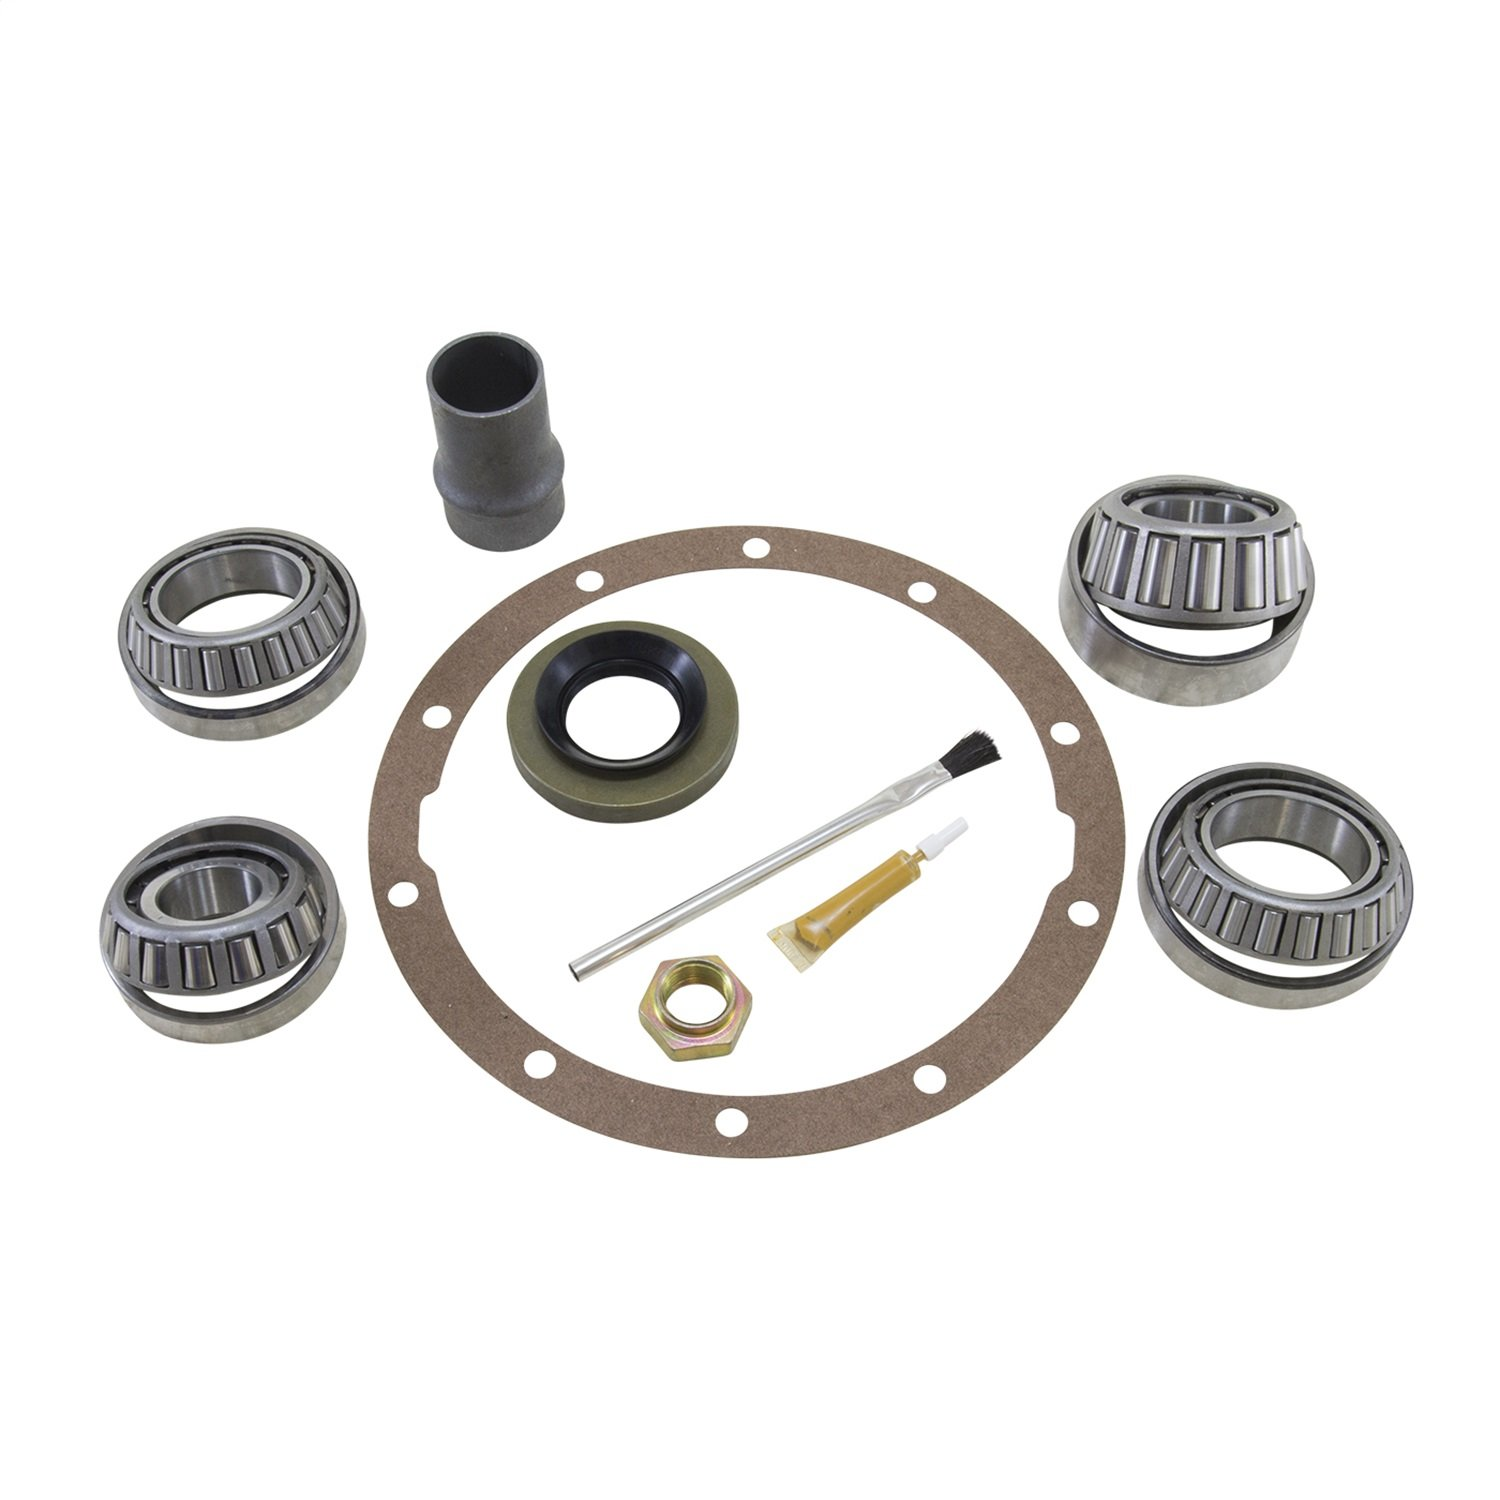 Yukon (BK T8-A) Bearing Installation Kit for Toyota 8'' Differential with Aftermarket Ring and Pinion